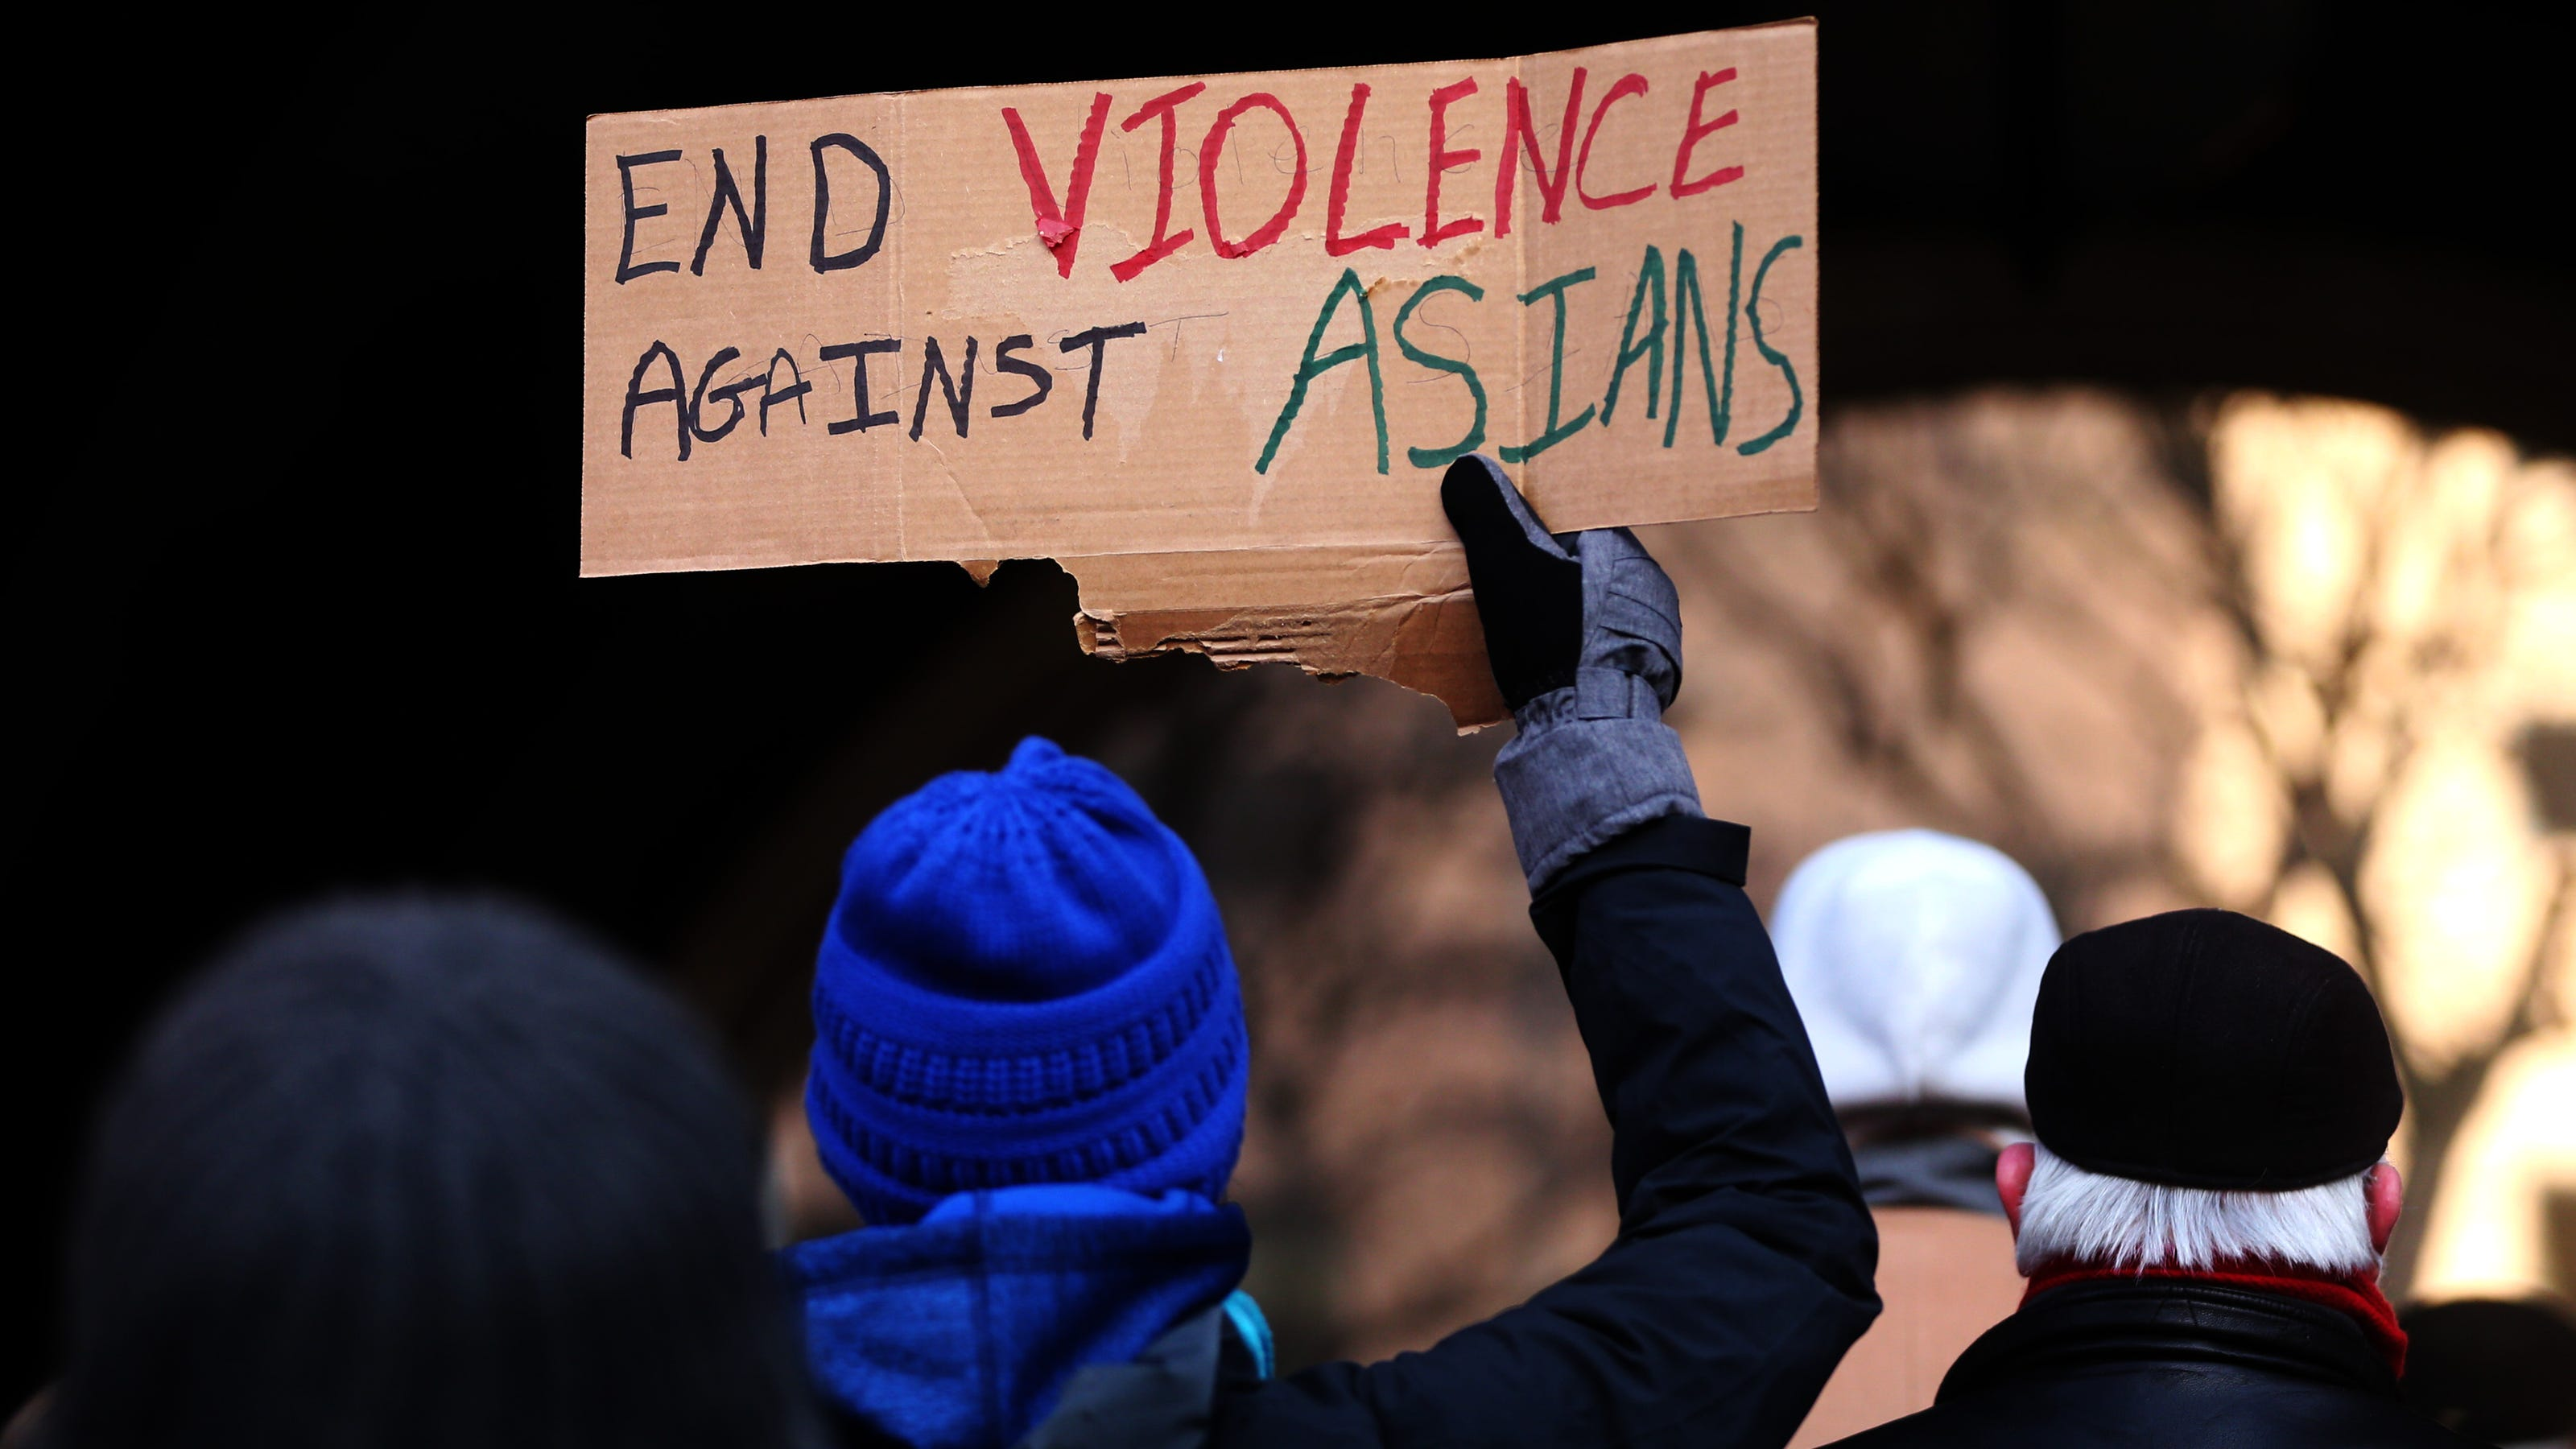 www.courier-journal.com: Kentucky Asian Americans urged to be cautious as violence and hate speech mounts